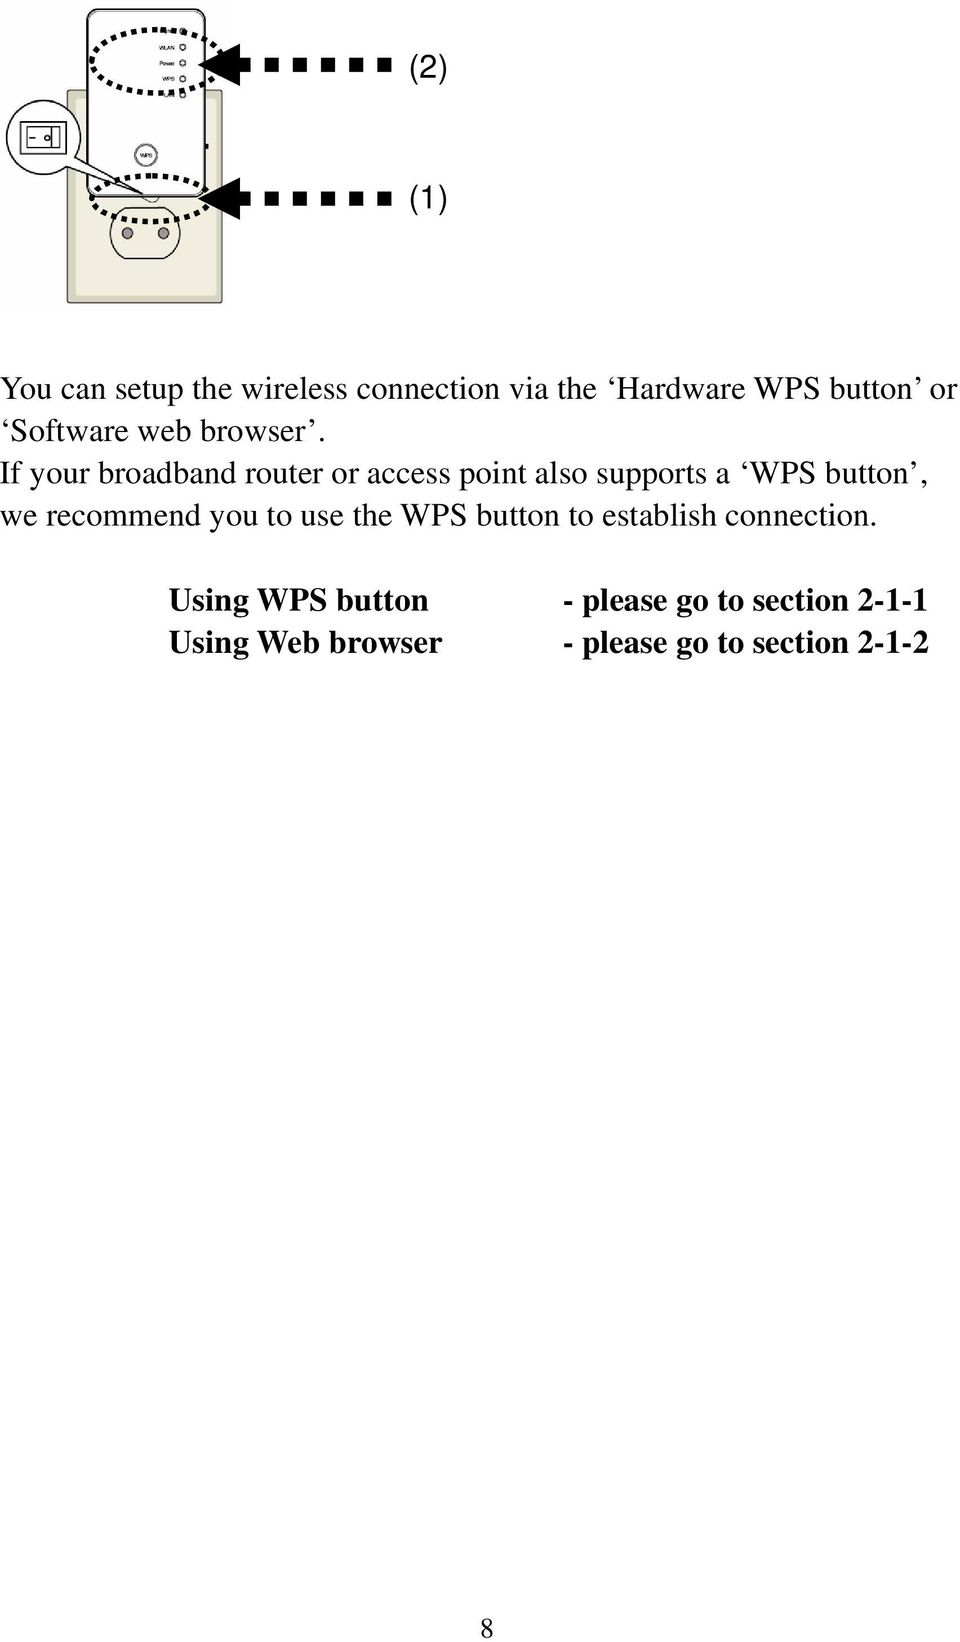 If your broadband router or access point also supports a WPS button, we recommend